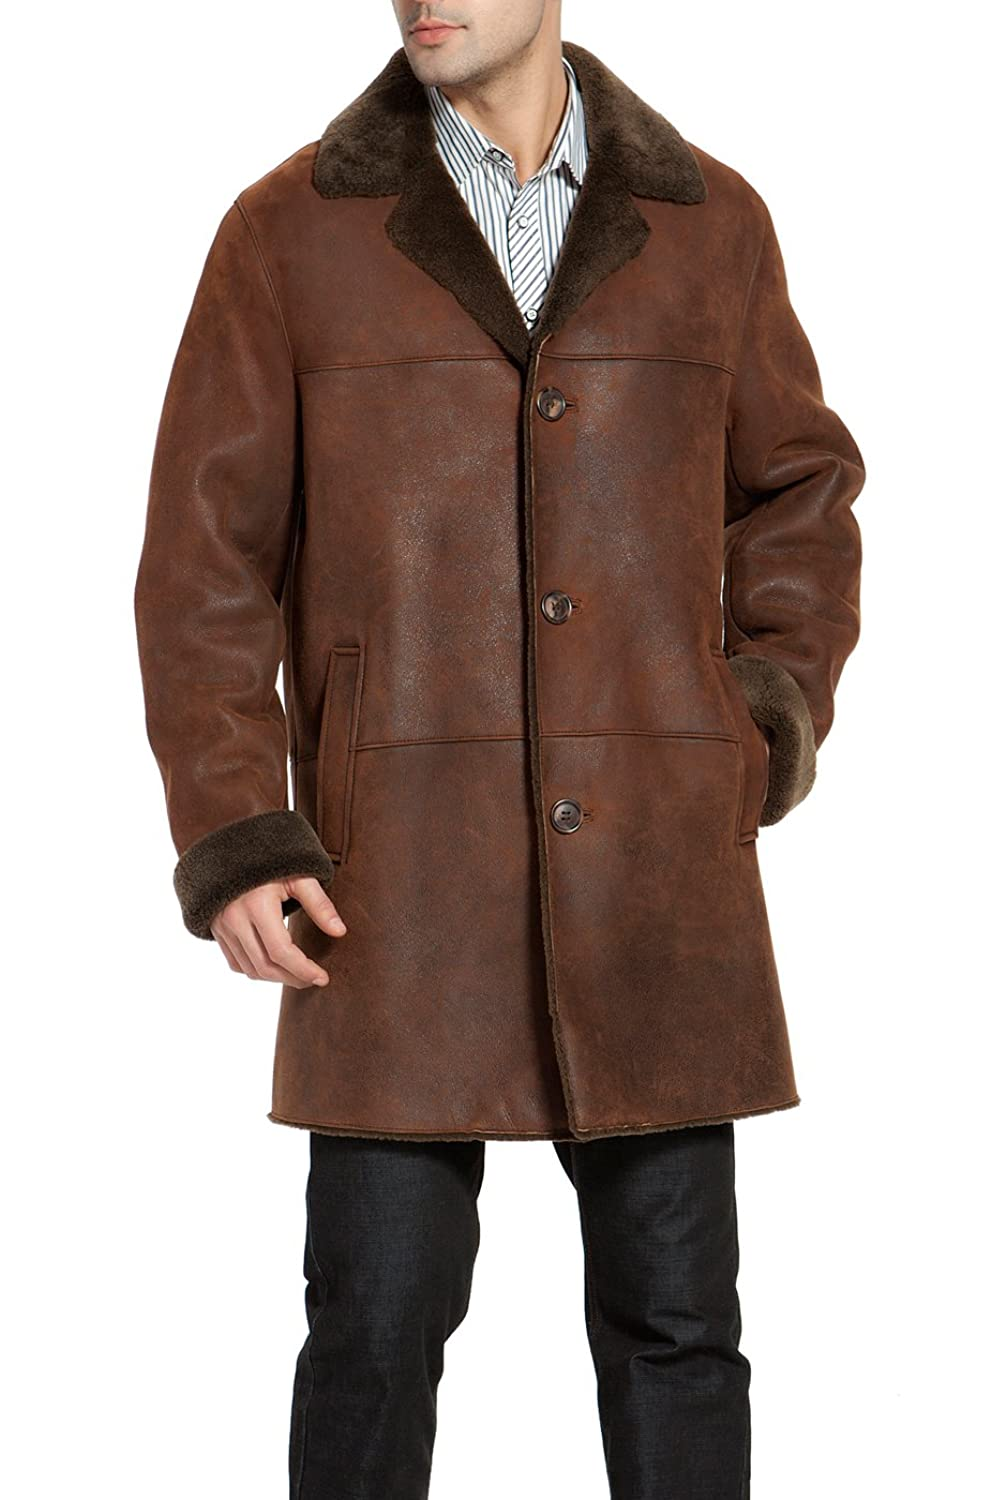 Best Winter Jackets for Men ⋆ Perfect Gift Store